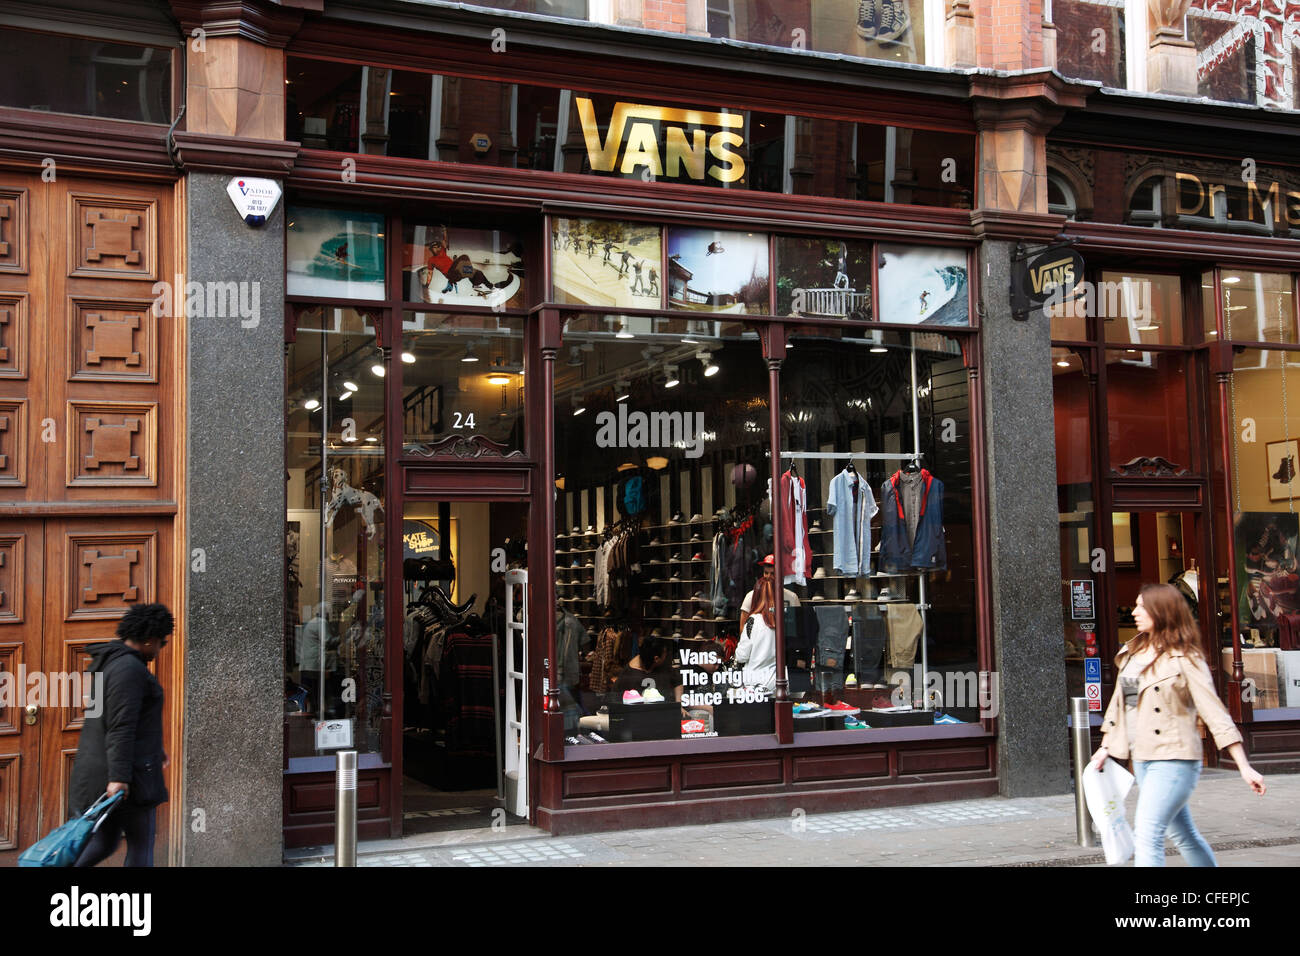 160084a069 Vans Store Stock Photos   Vans Store Stock Images - Alamy